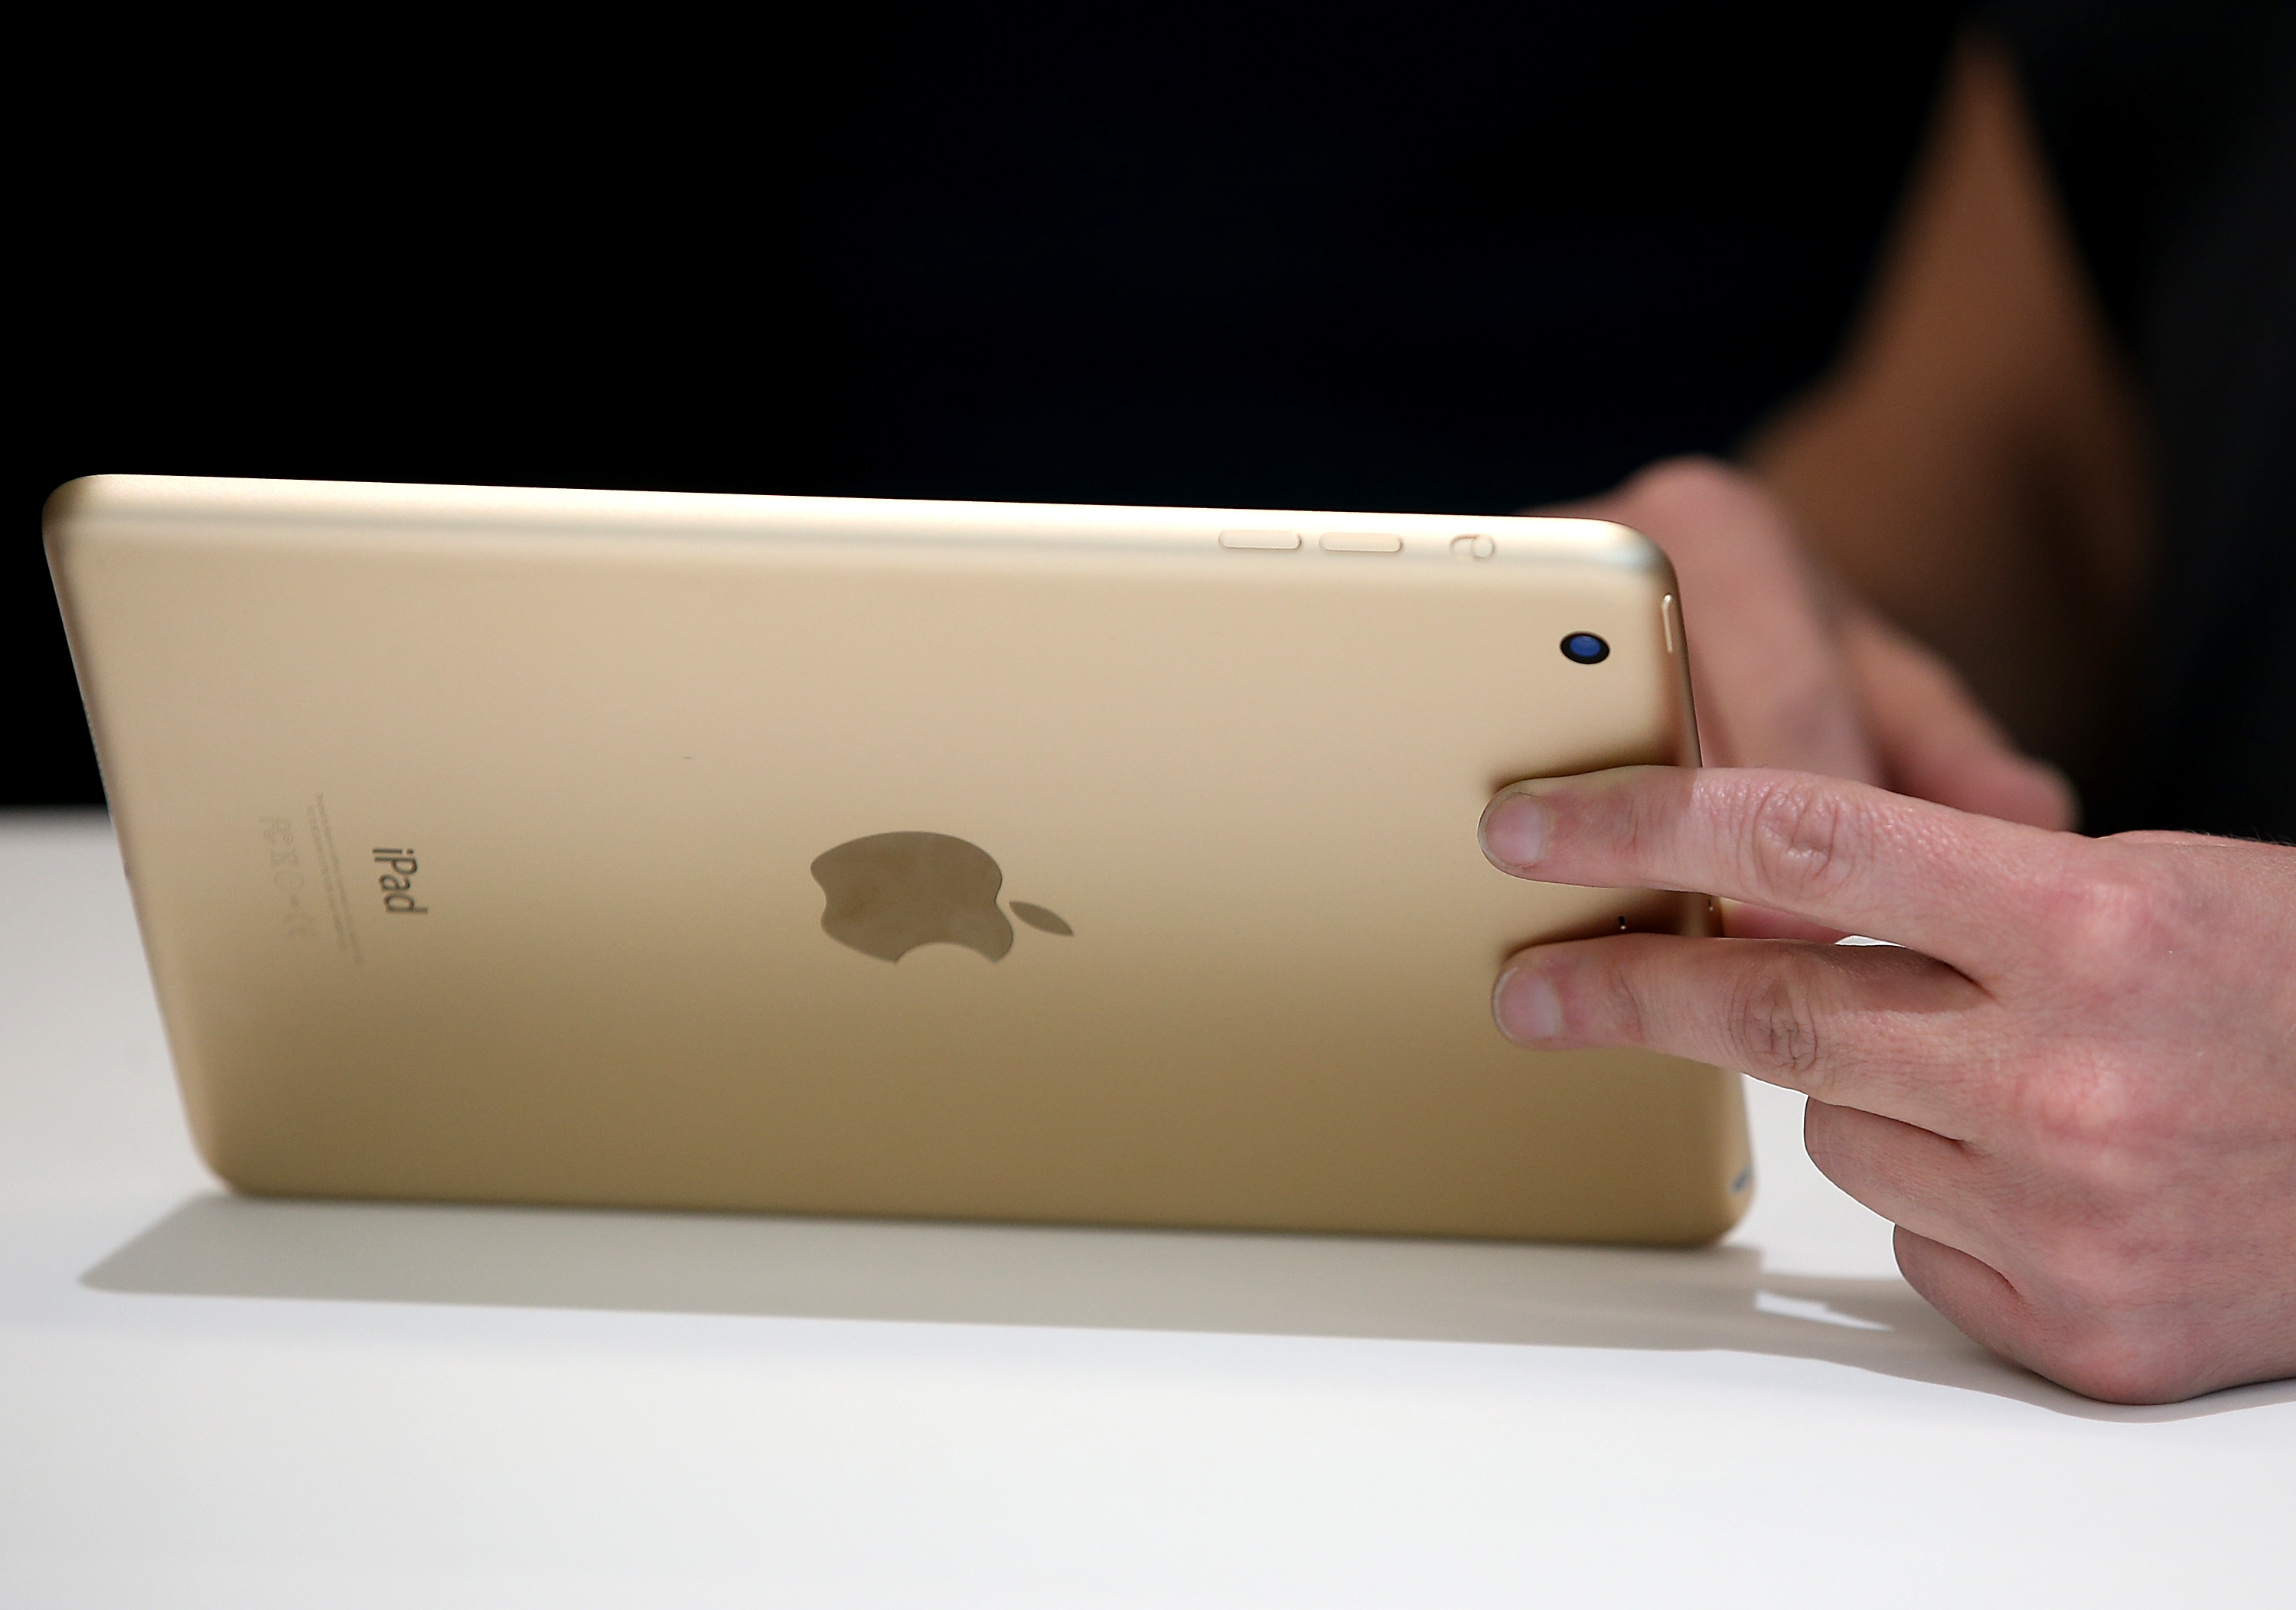 An attendee inspects the new iPad Mini 3 during an Apple special event on October 16, 2014 in Cupertino, California. (Photo by Justin Sullivan/Getty Images)